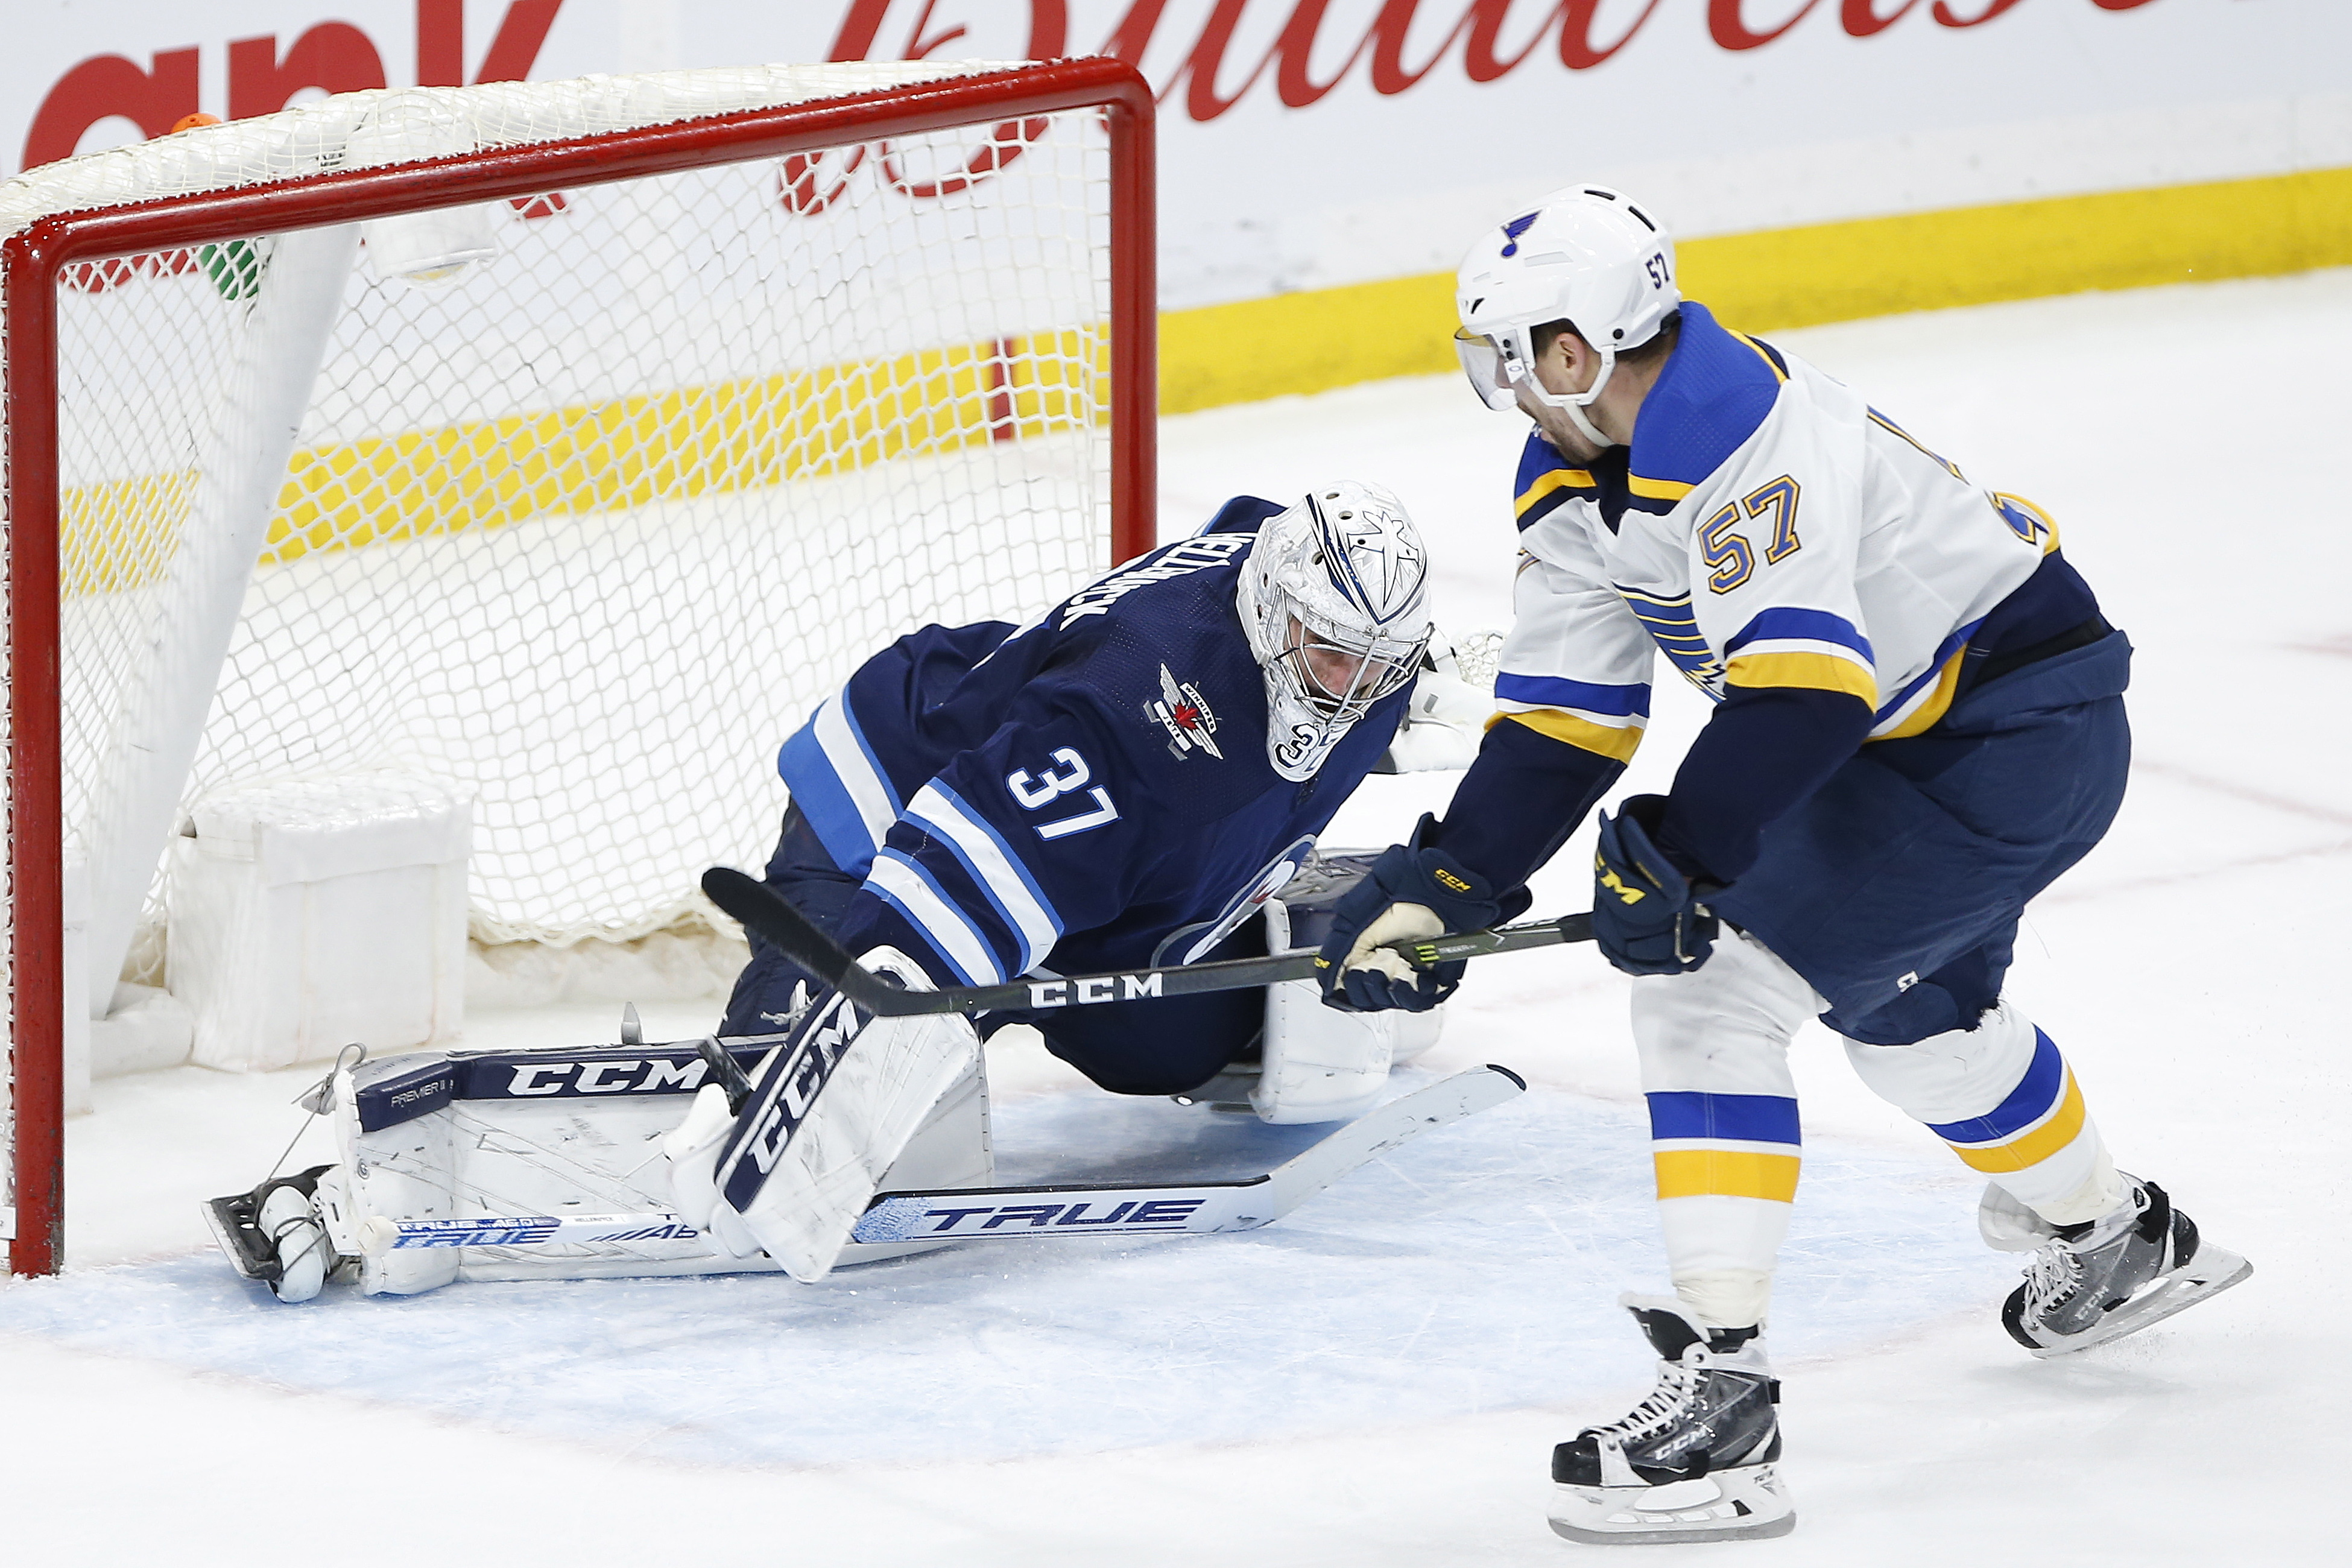 Perron scores in OT; Blues win 7th straight, 5-4 over Jets